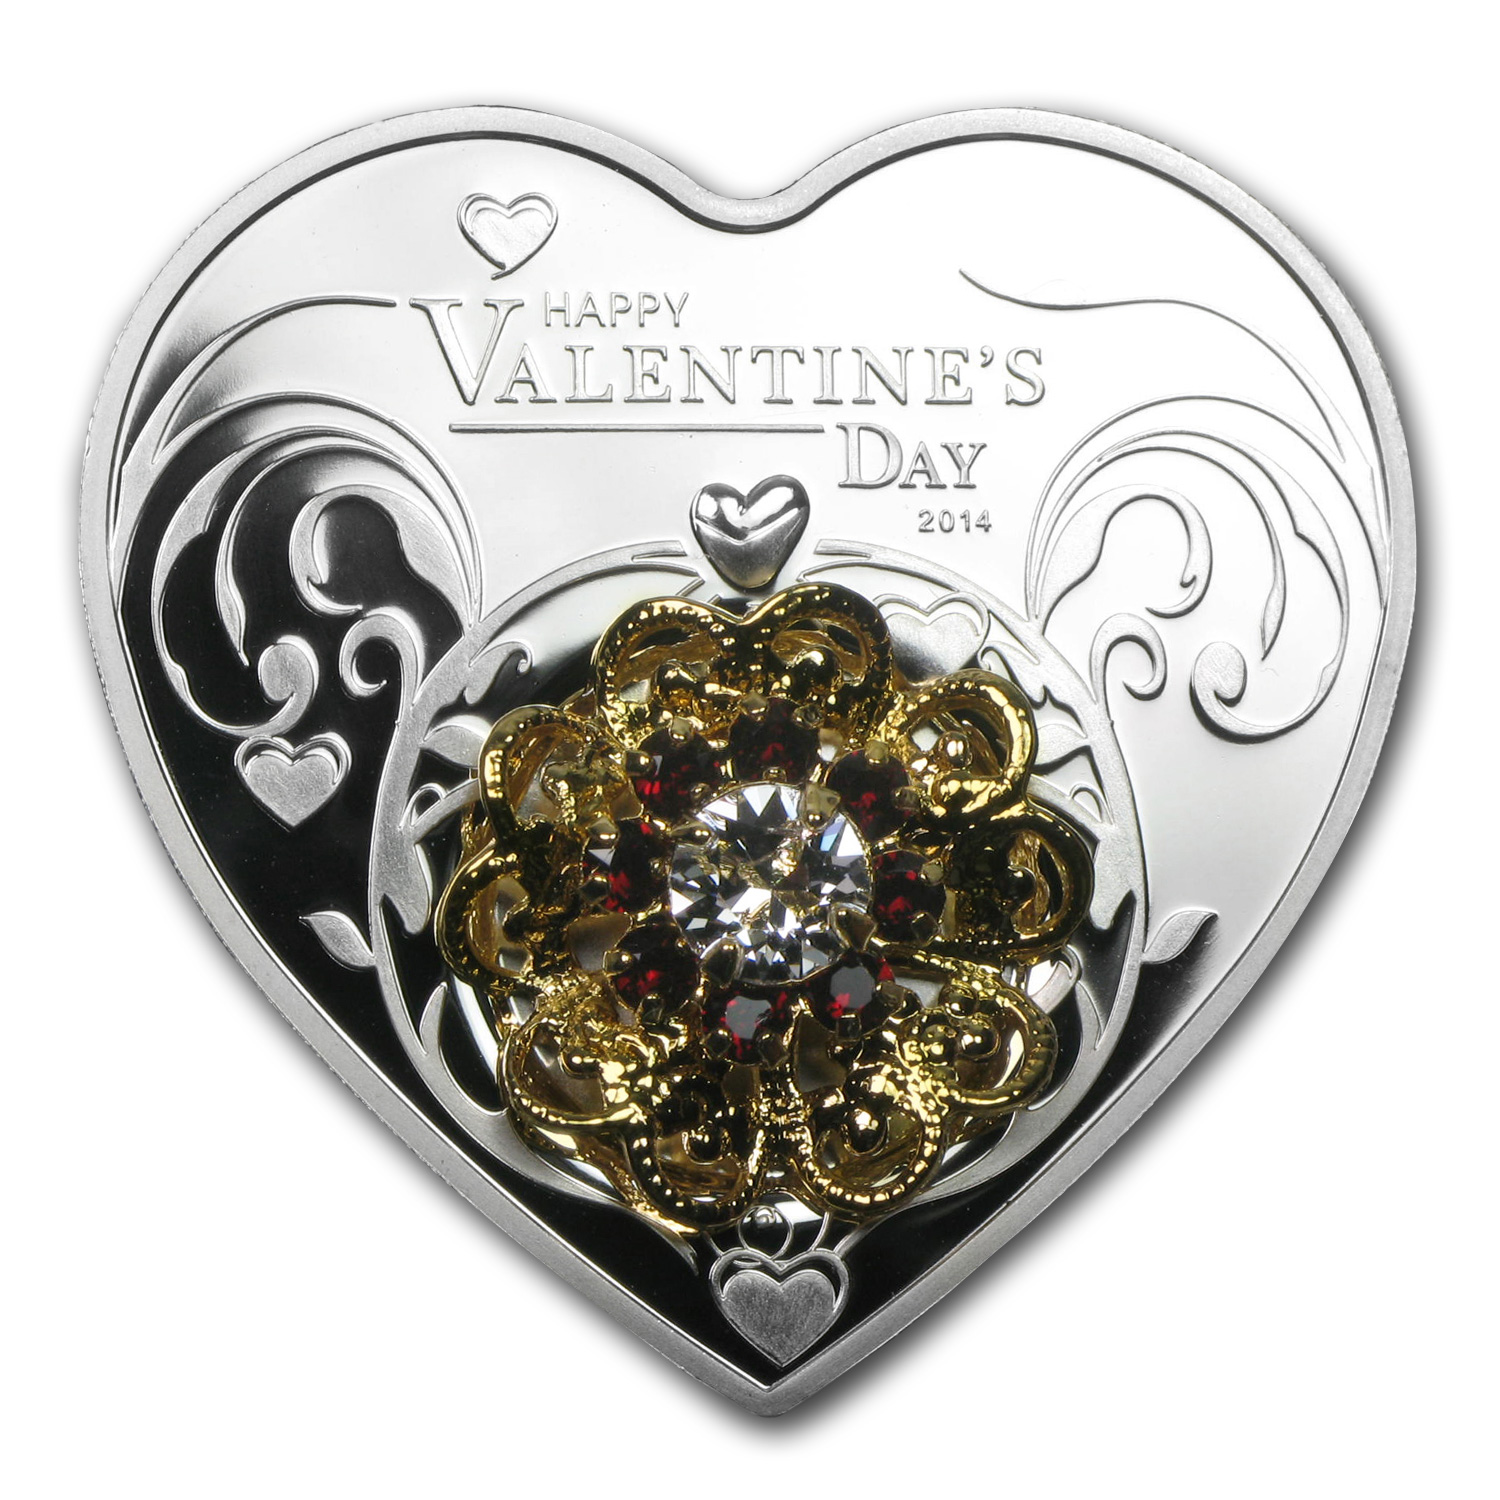 2014 Cook Islands Silver Happy Valentine's Day-Heart Shape